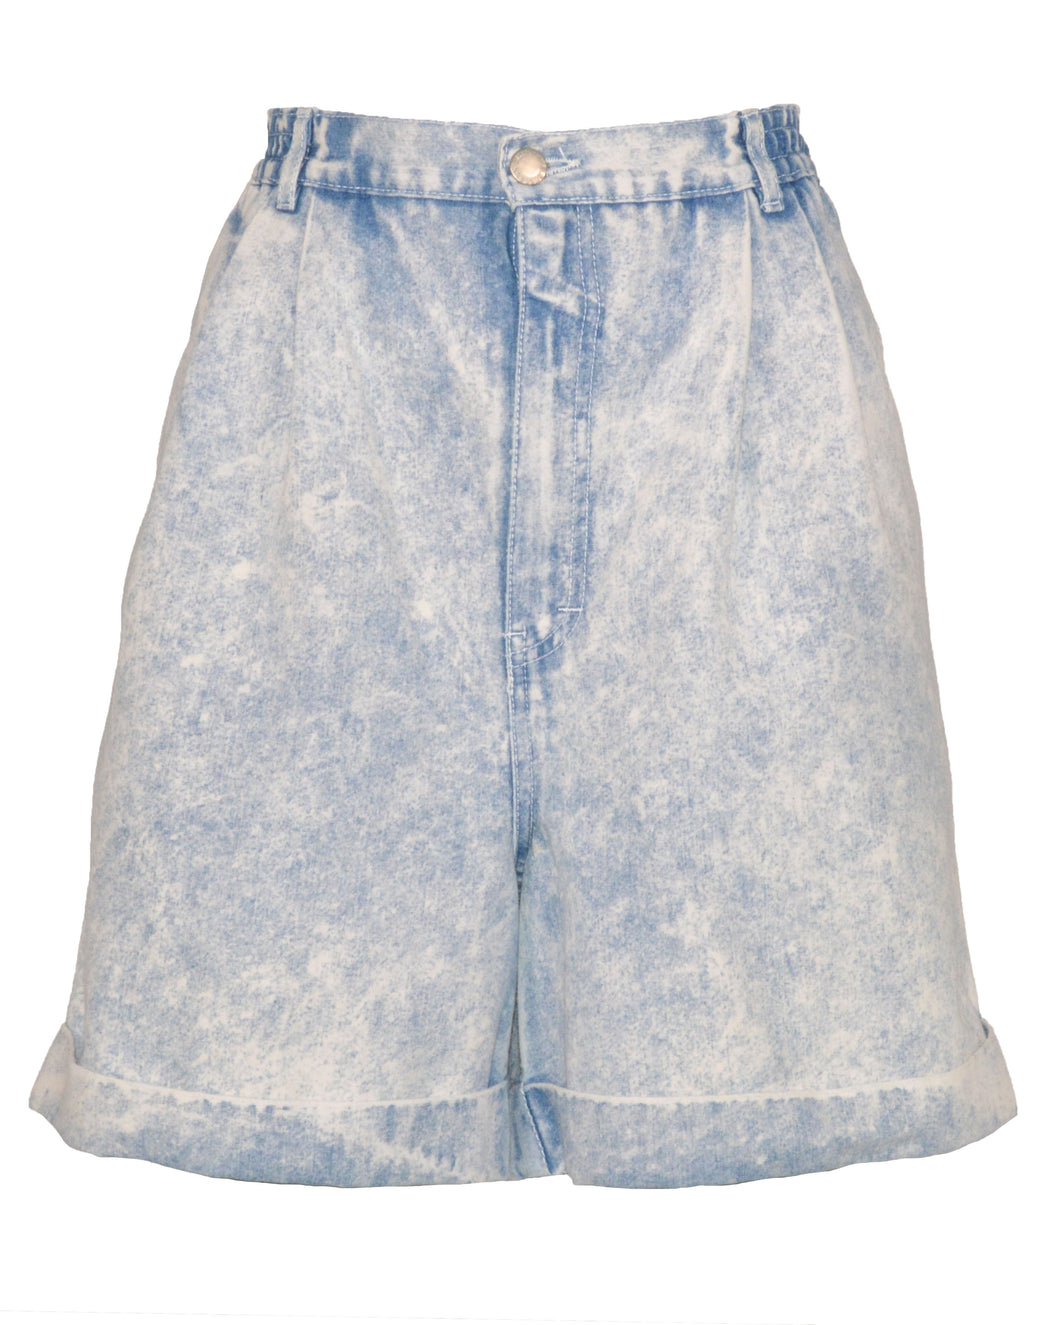 ACID WASH SHORTS - WOMEN'S SIZE 16